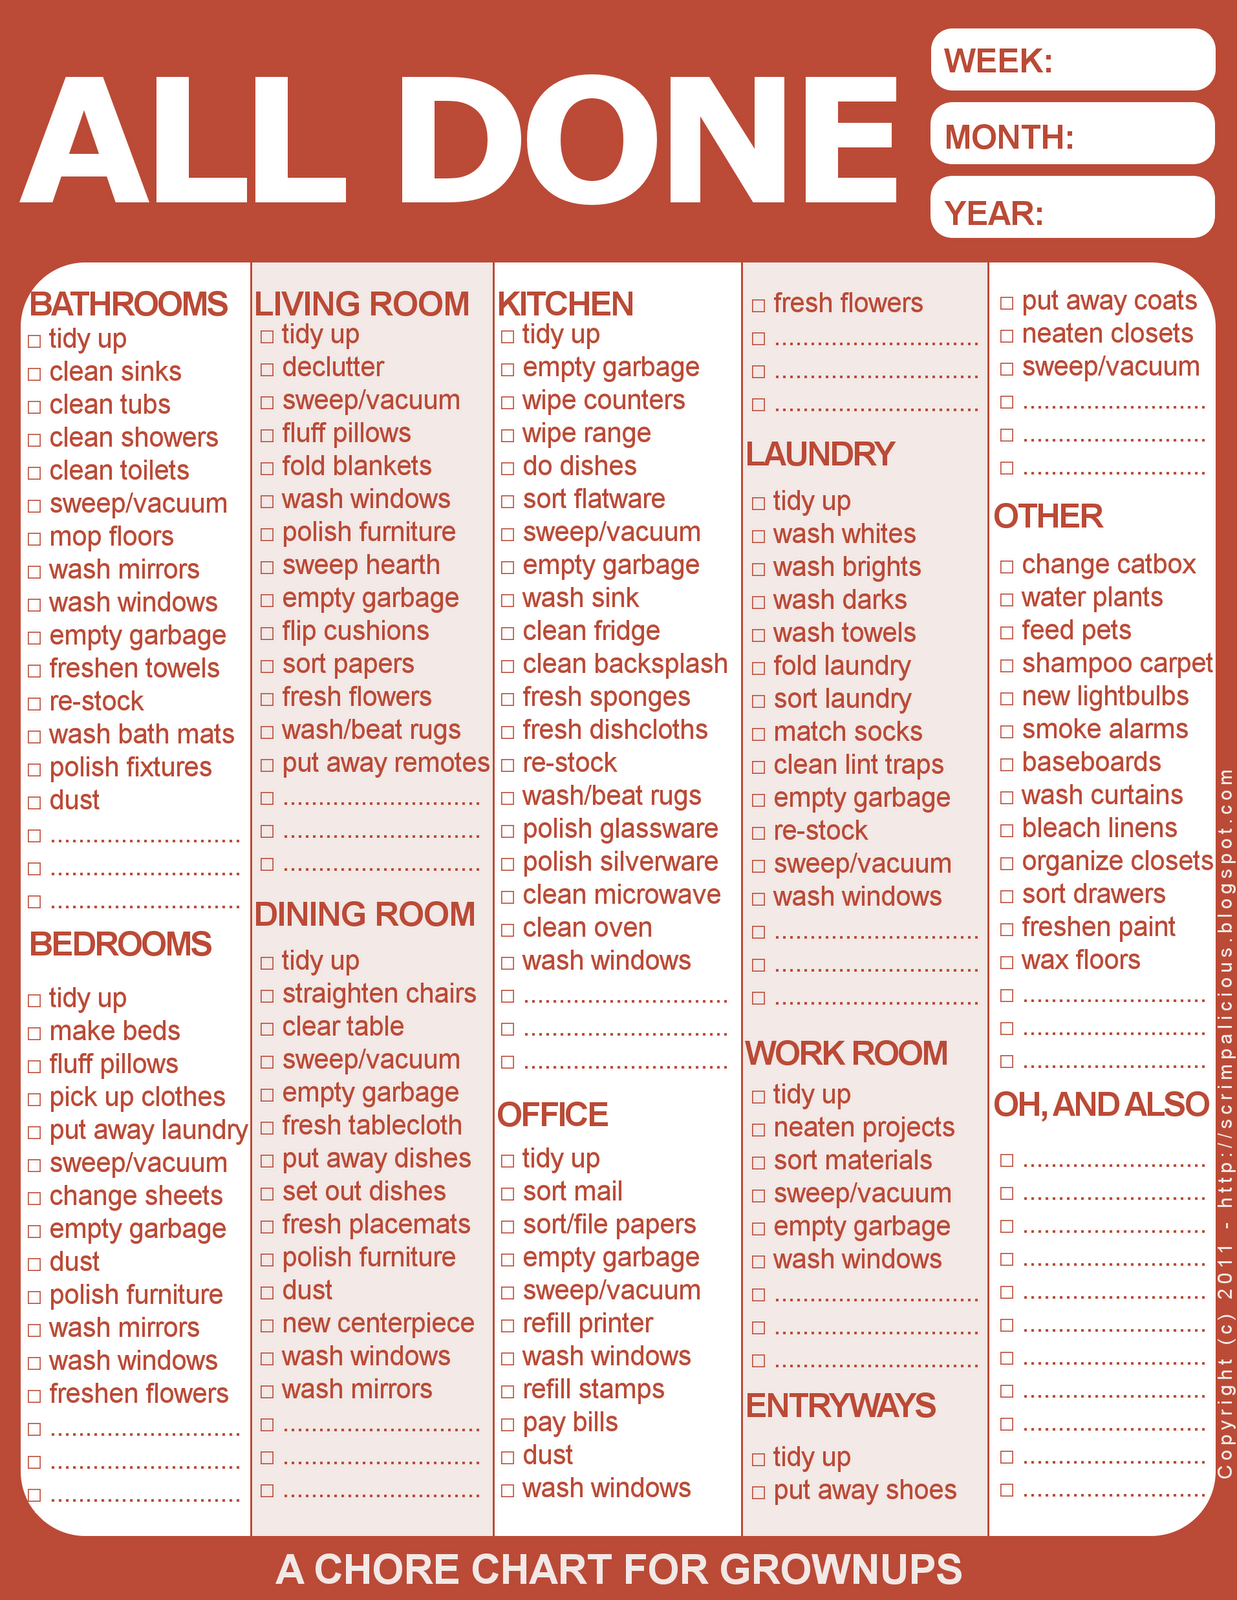 free printable chore chart | clutter and cleaning solutions